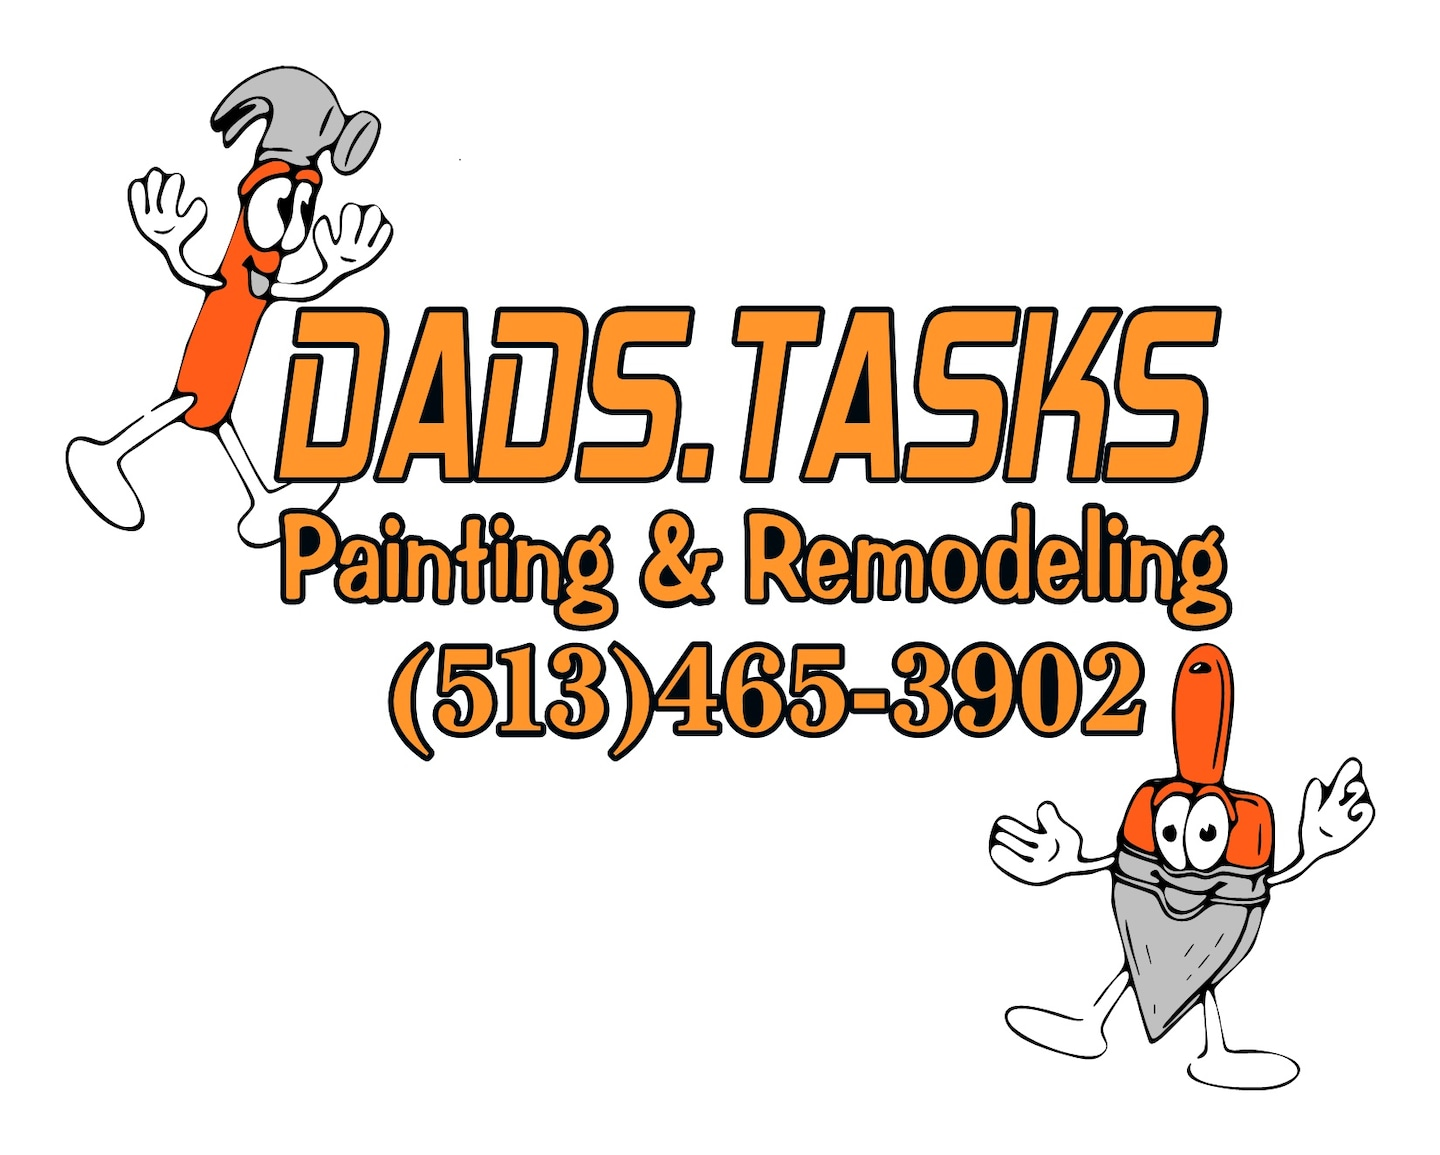 Dadstasks Painting and Remodeling LLC